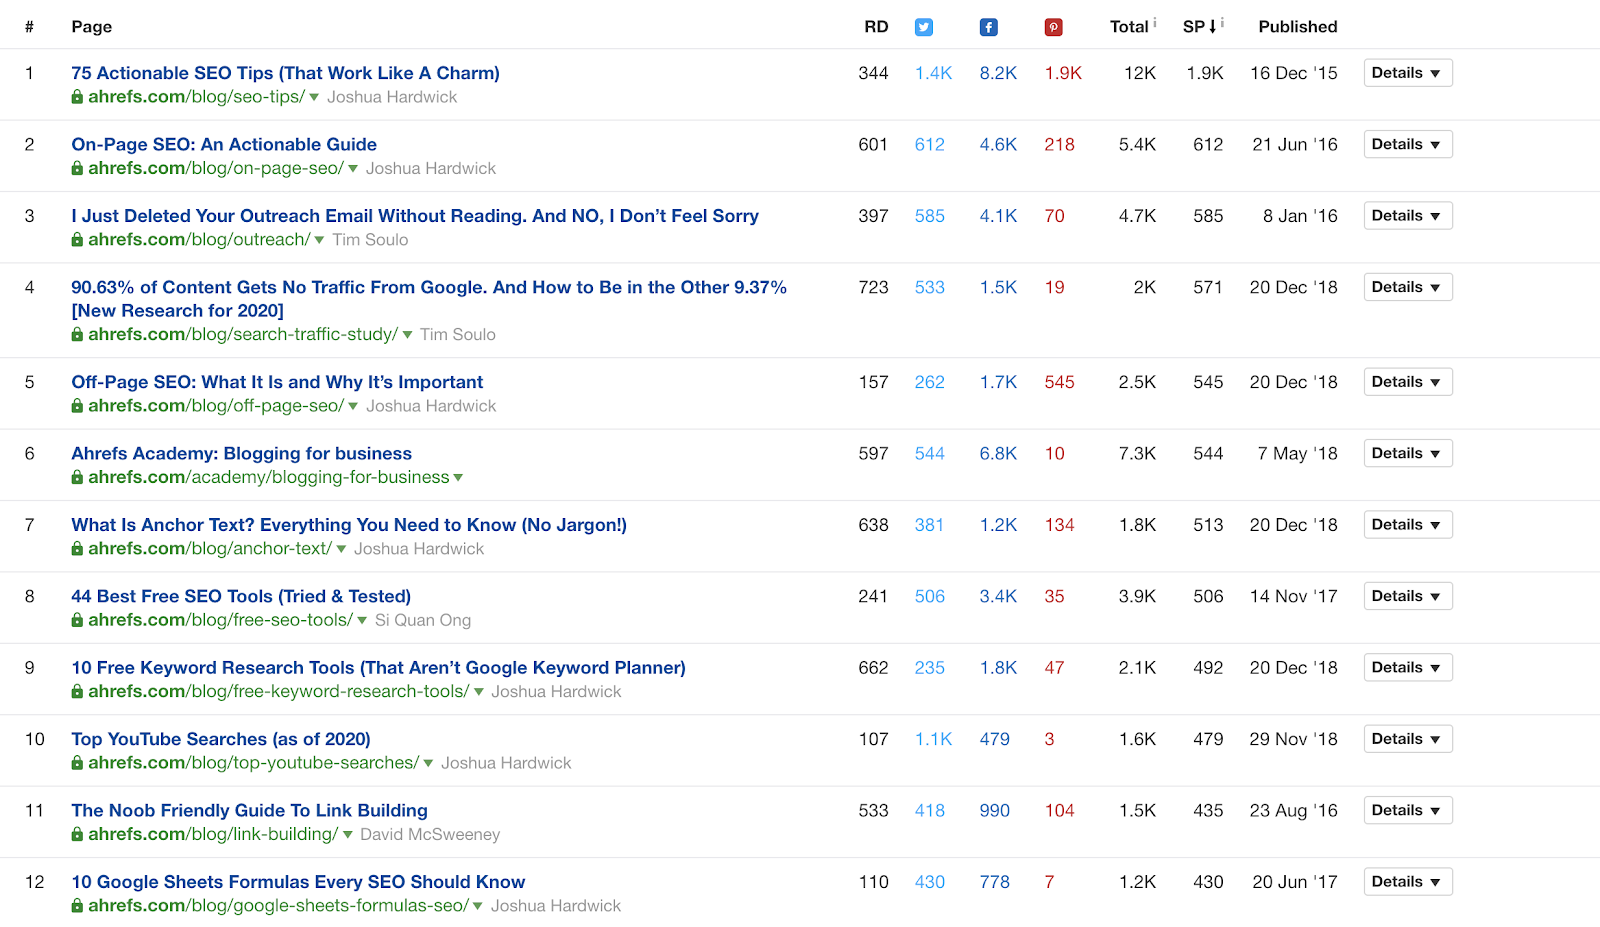 Most Shared Pages by Ahrefs